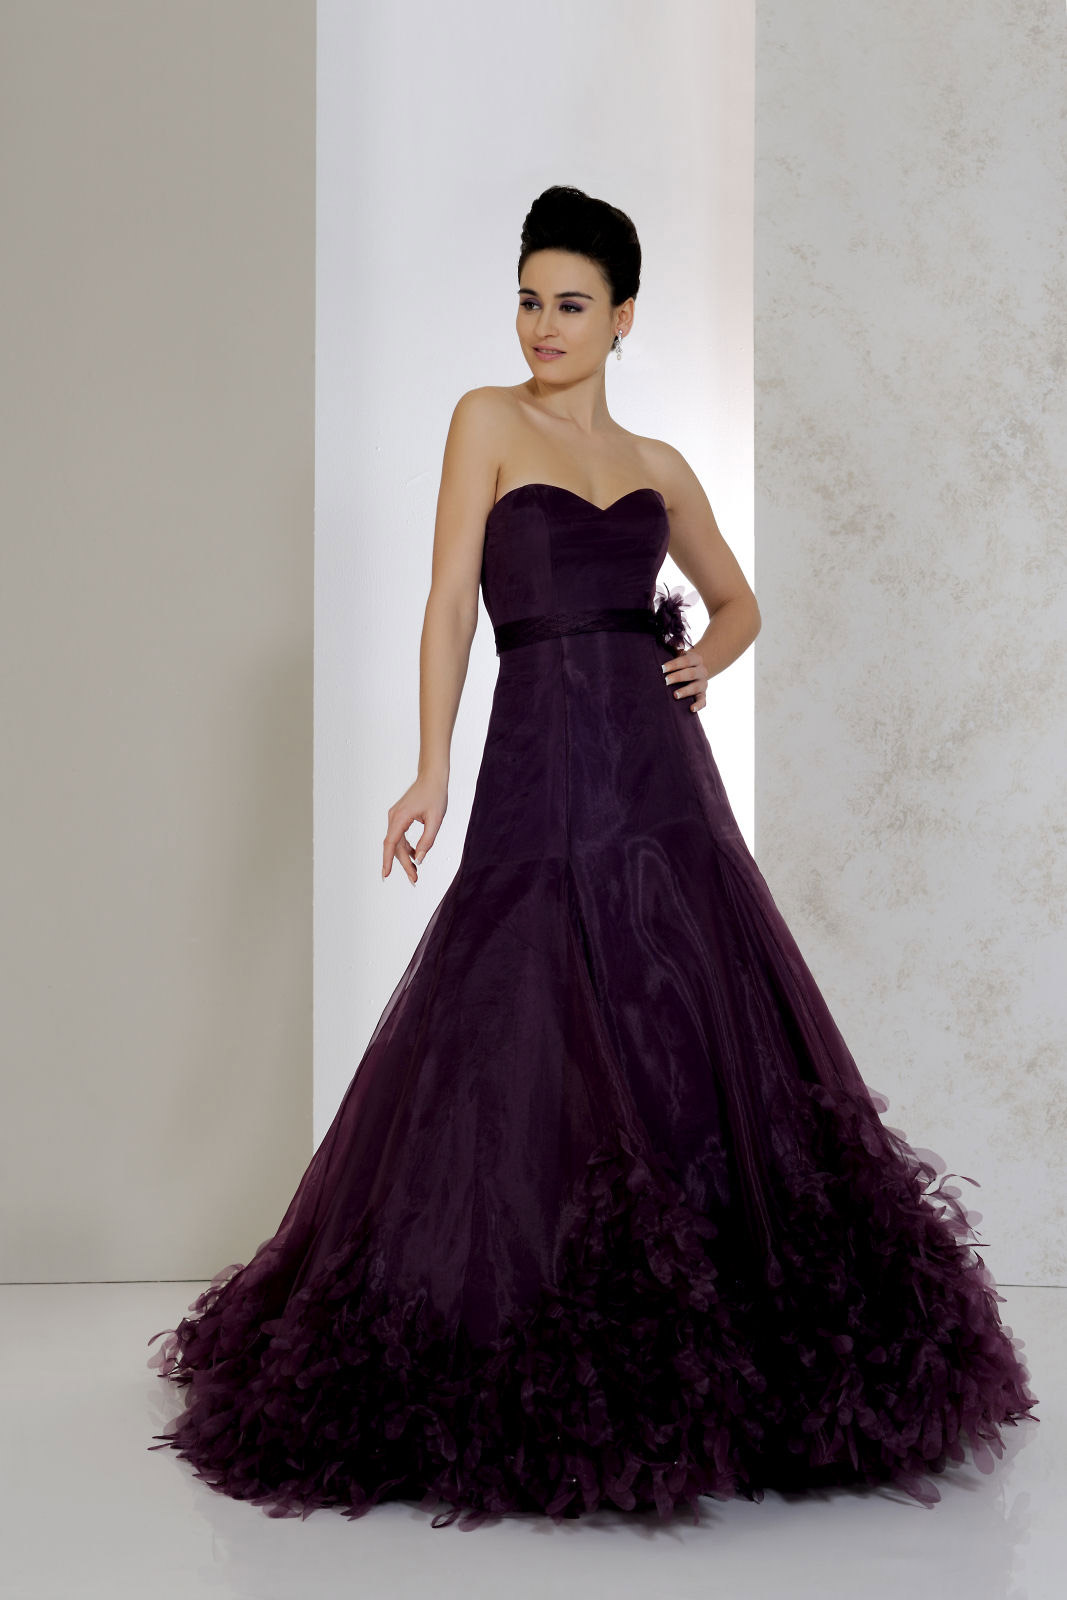 how to look less gloomy in gothic wedding dresses  the